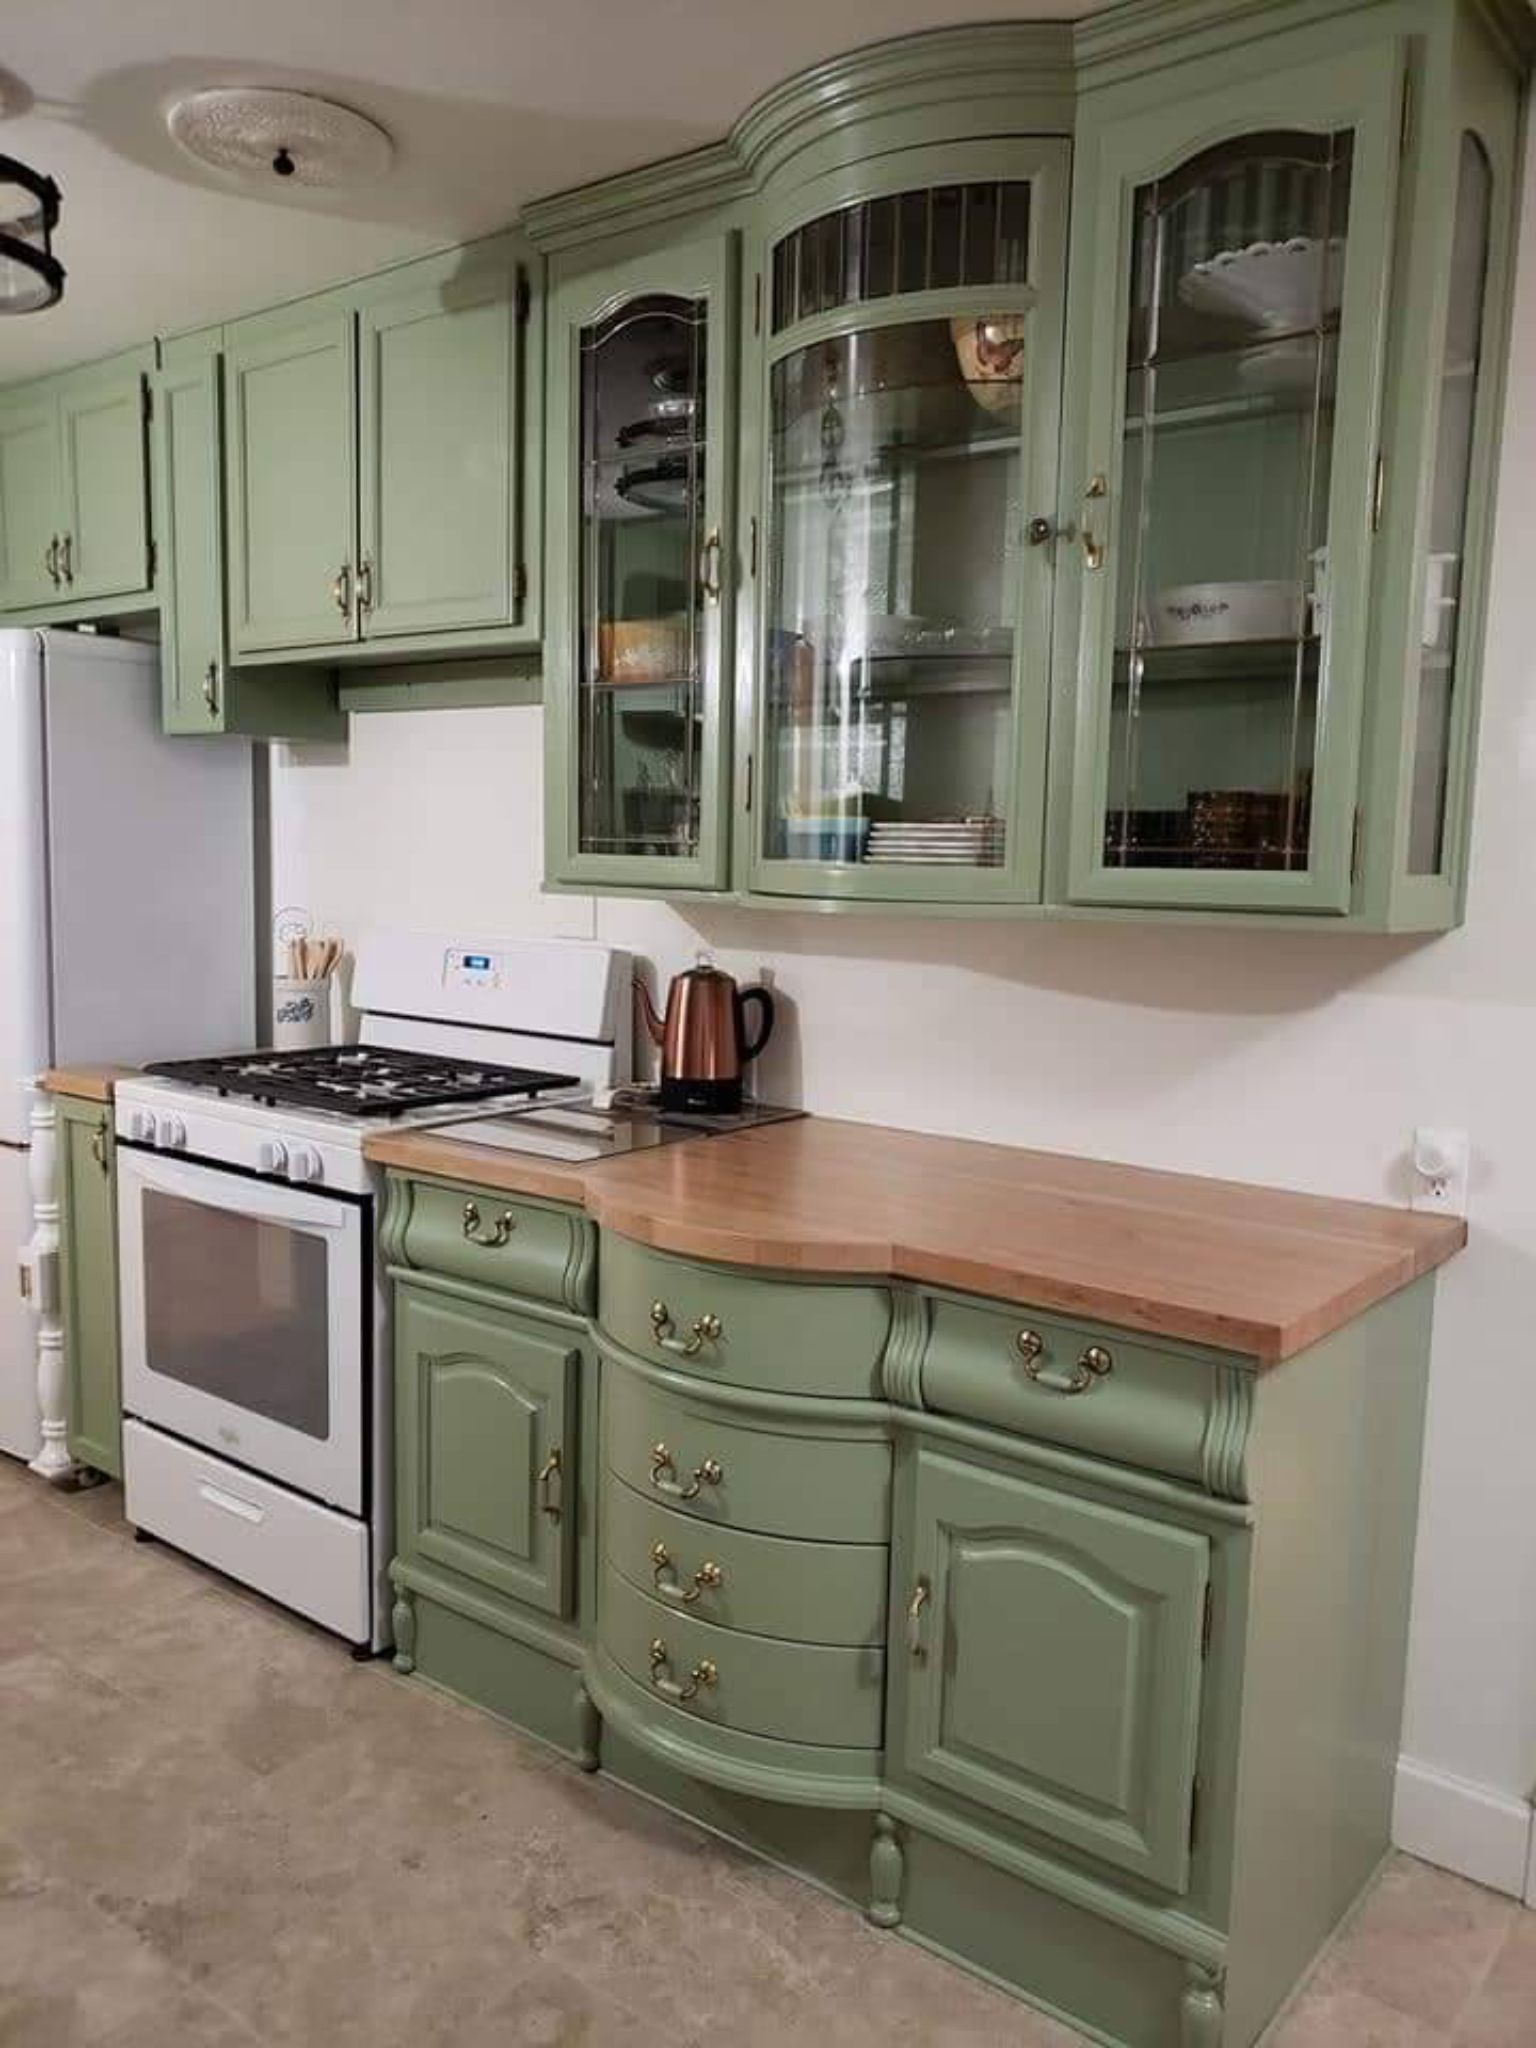 Use China Cab As Butler Pantry Repurposed Kitchen Kitchen Cabinets Repurposed China Cabinet